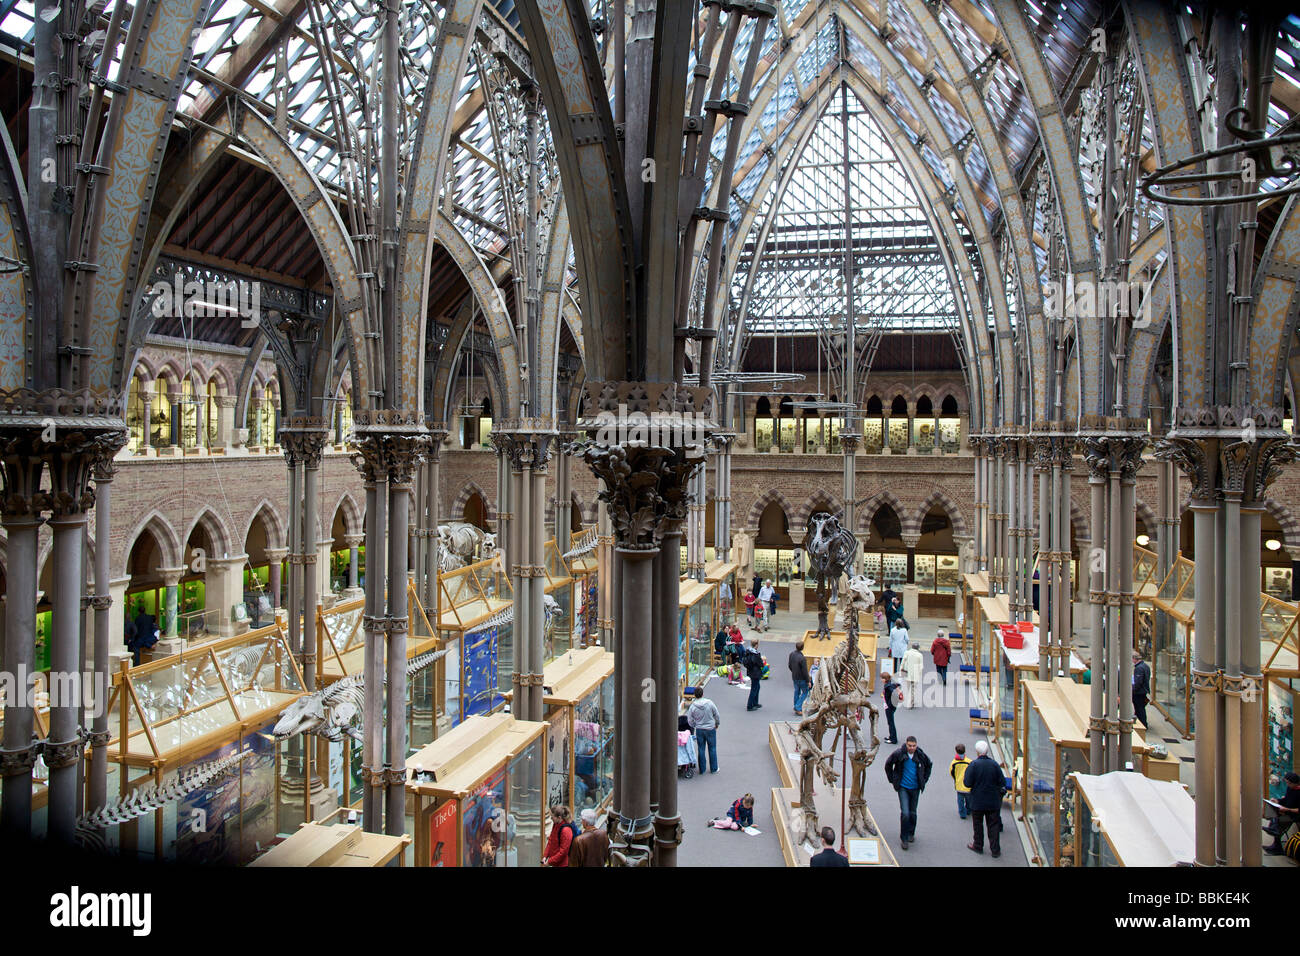 Oxford University Museum of Natural History England - Stock Image